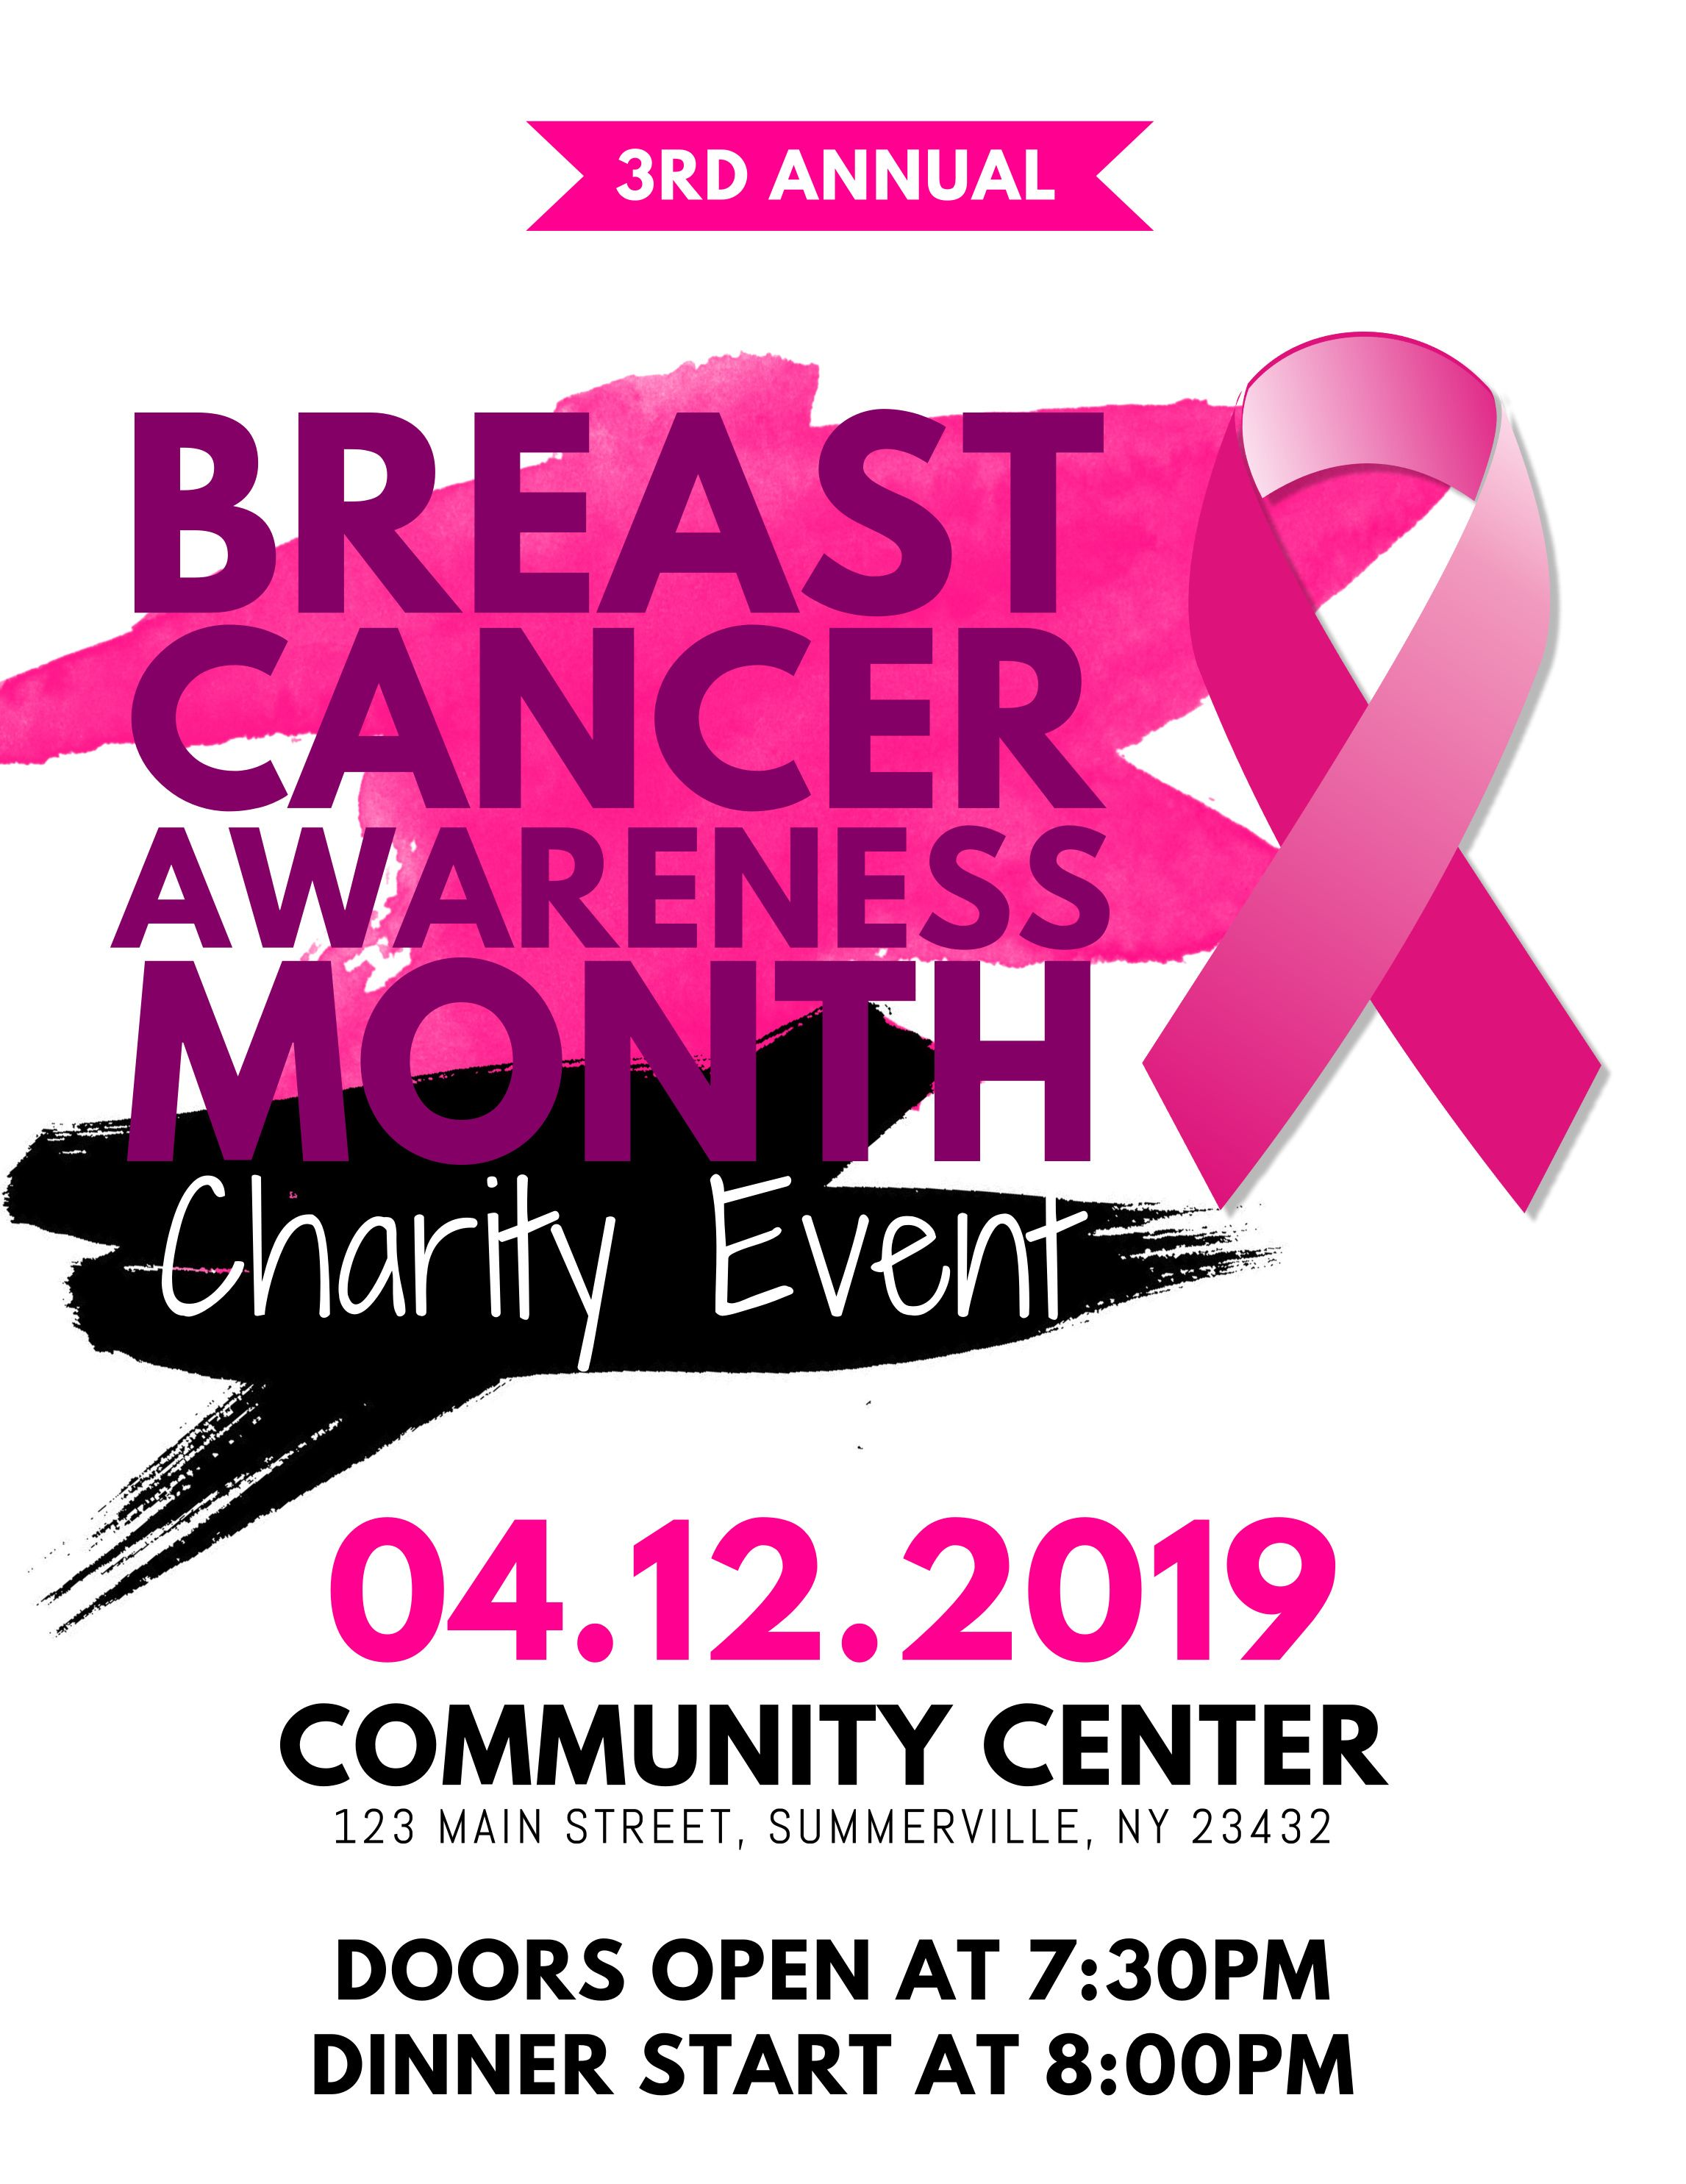 Breast cancer awareness month charity event poster flyer   Breast ...